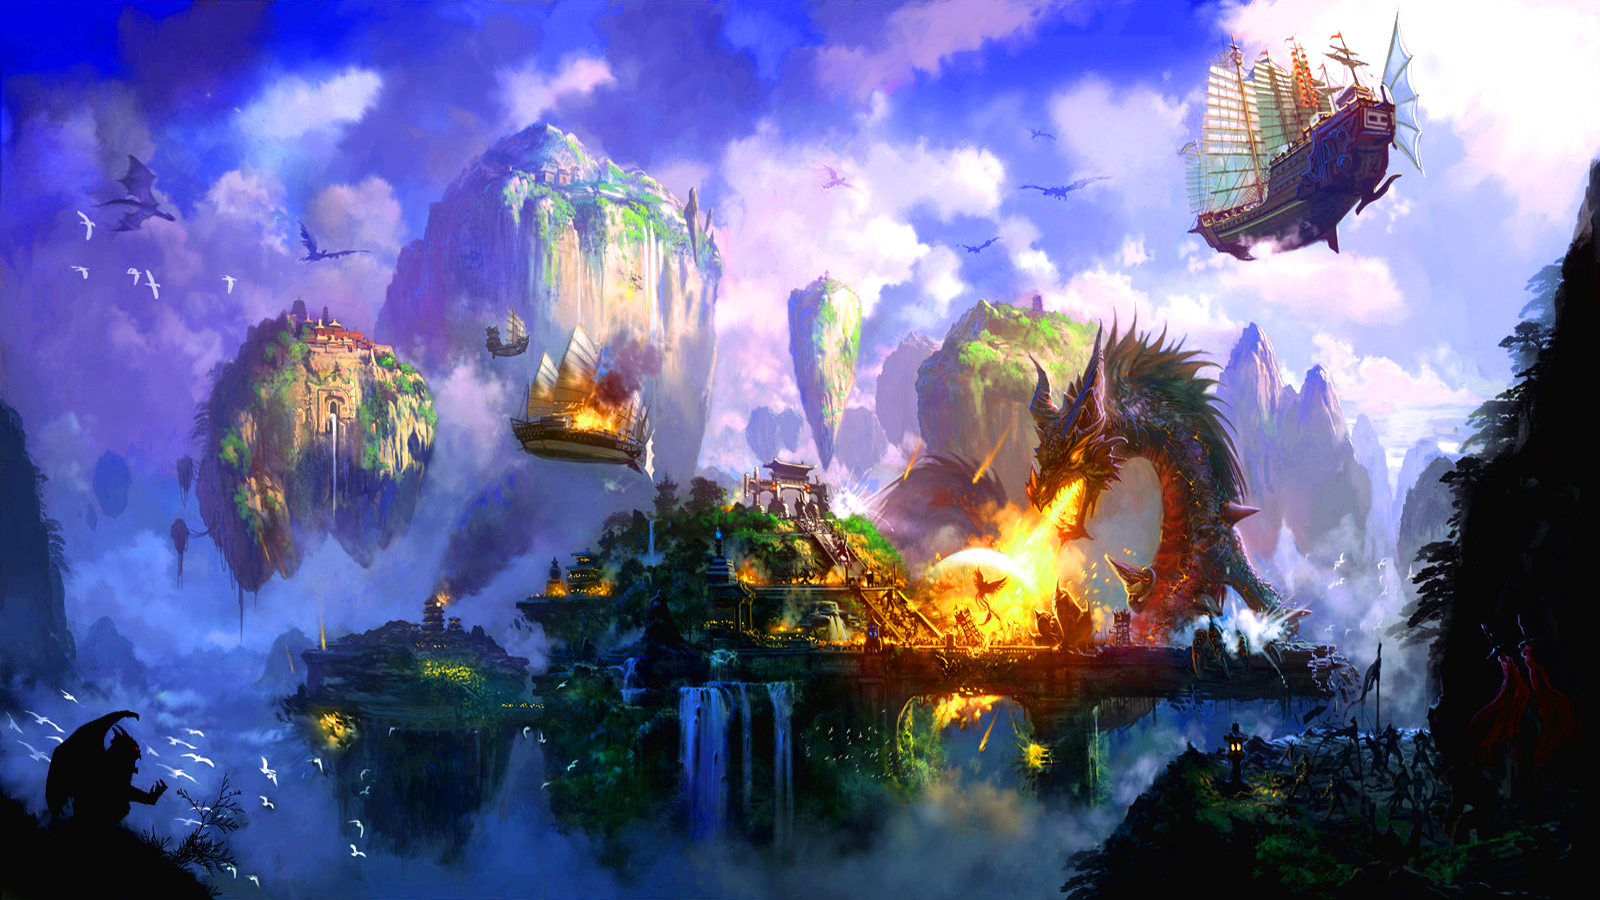 Runescape New Game HD Wallpapers - All HD Wallpapers